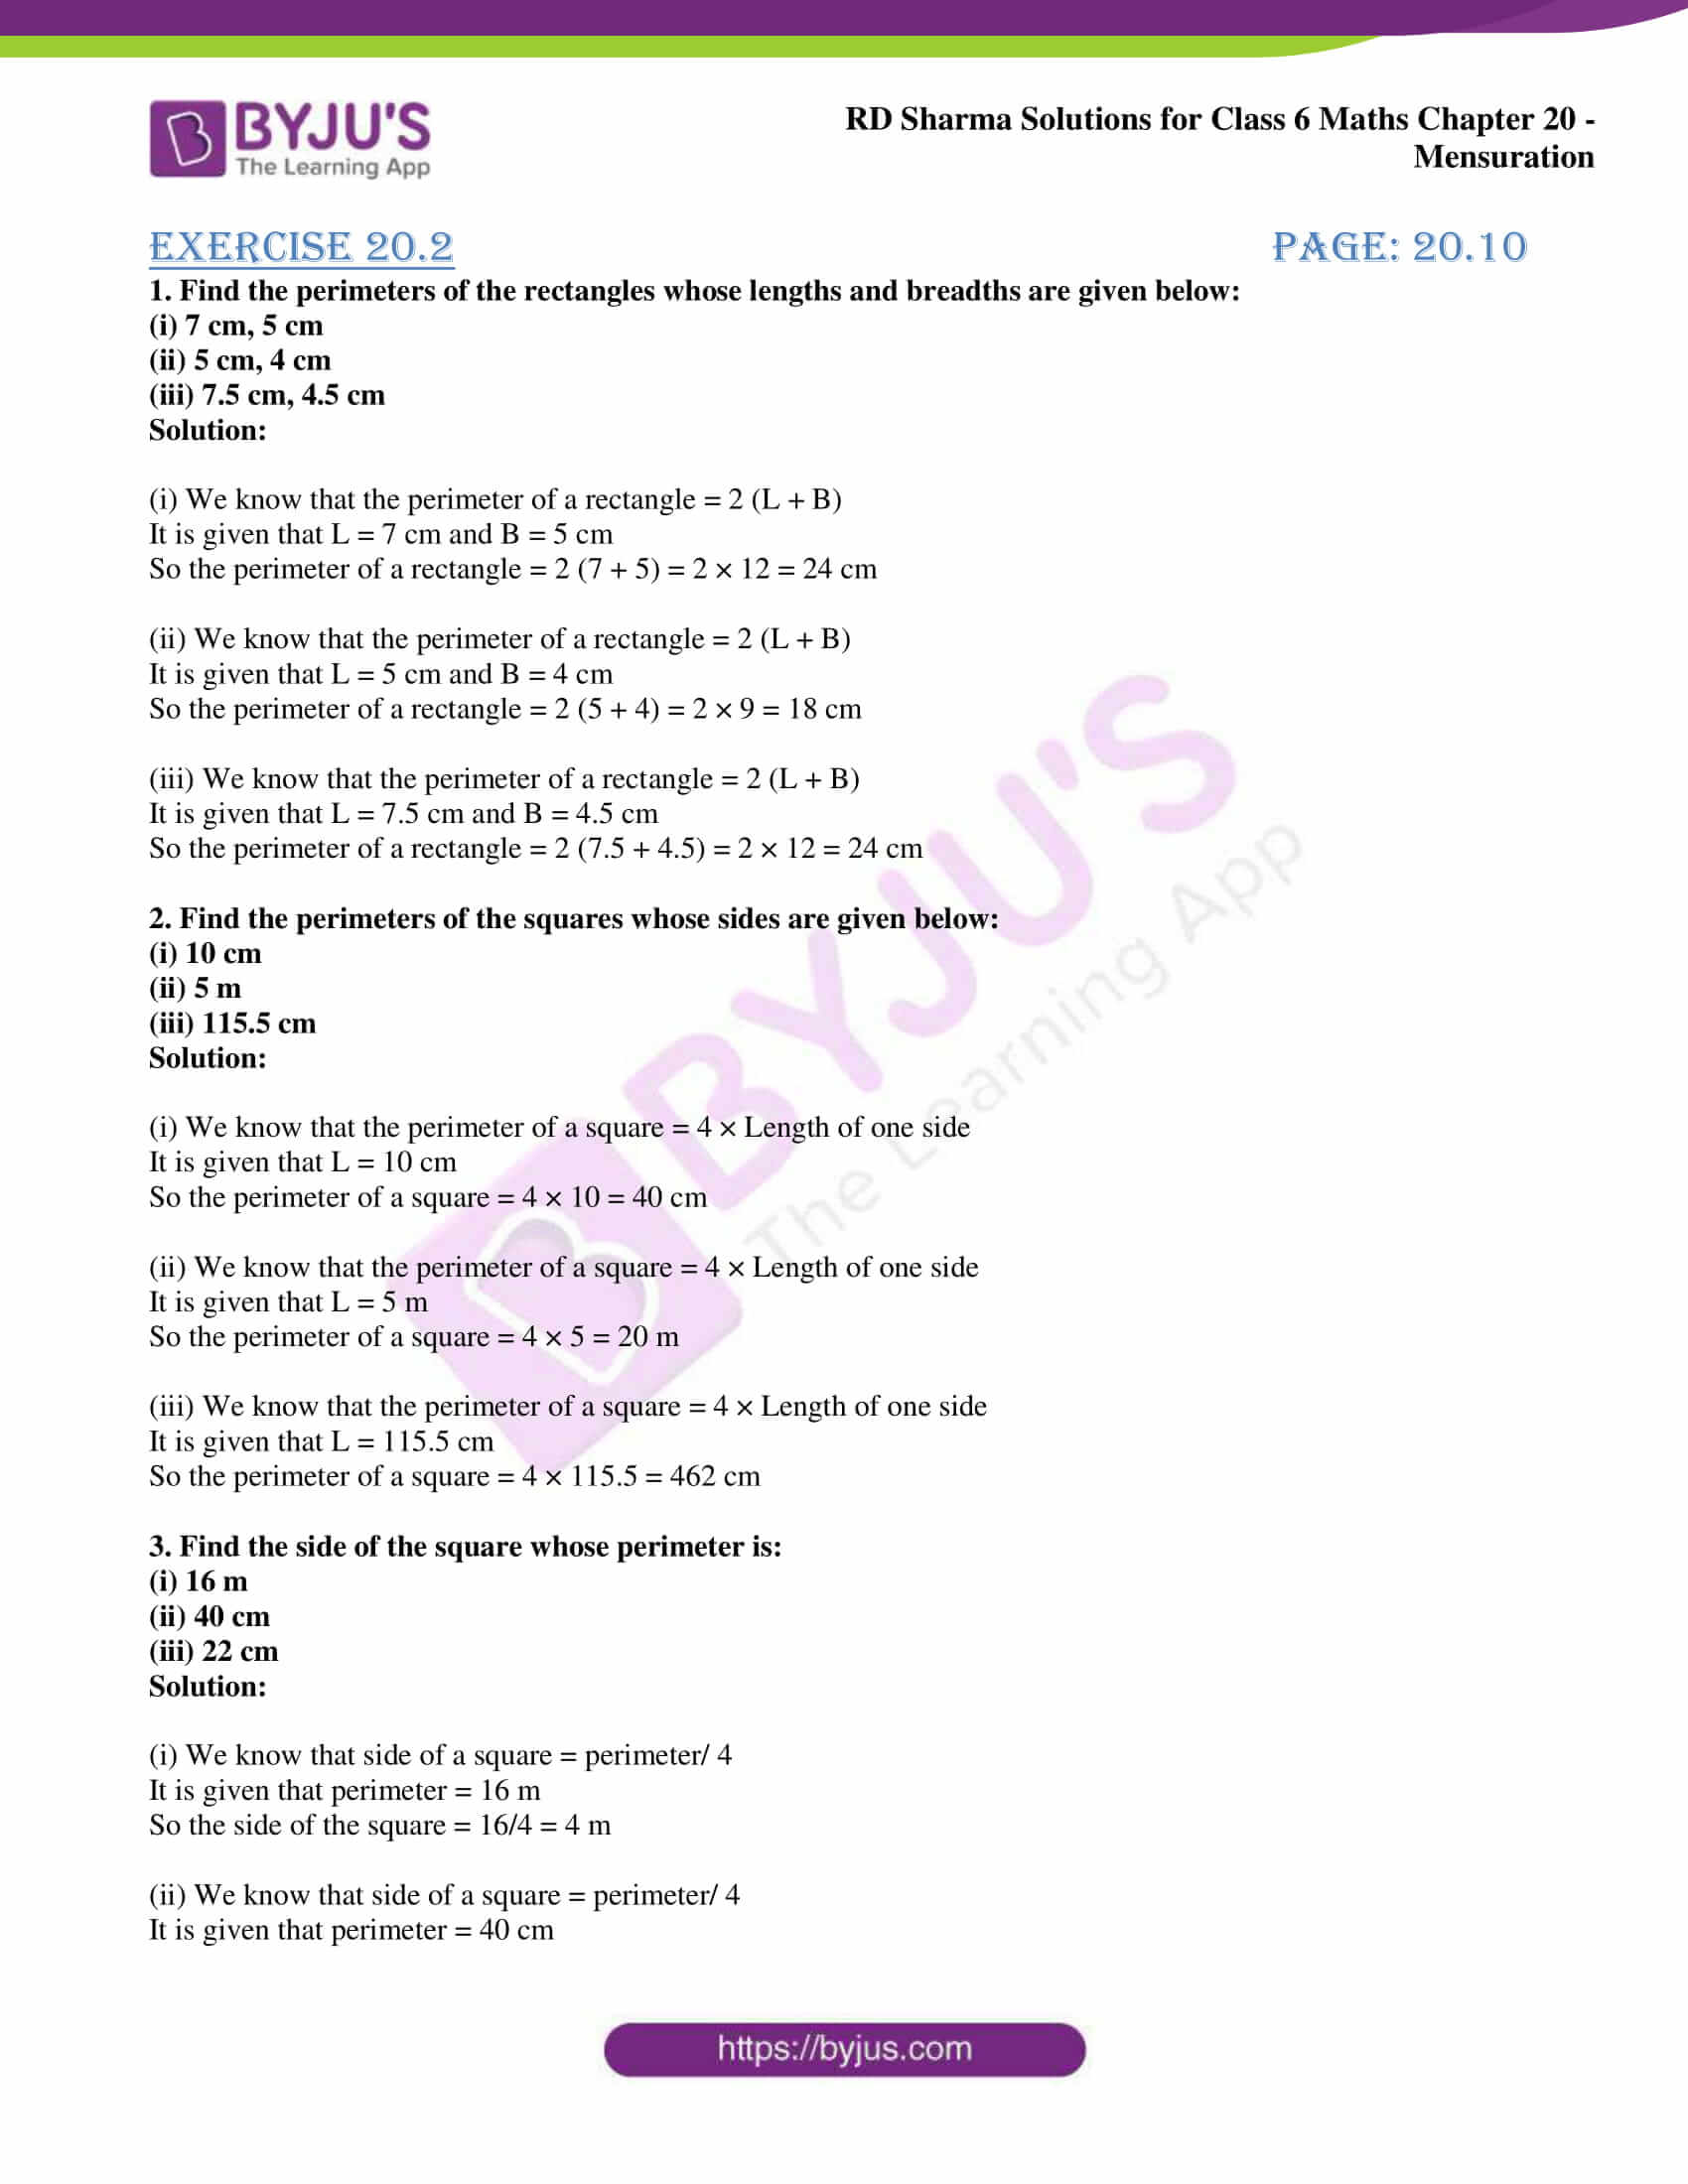 rd sharma solutions nov2020 class 6 maths chapter 20 exercise 2 1